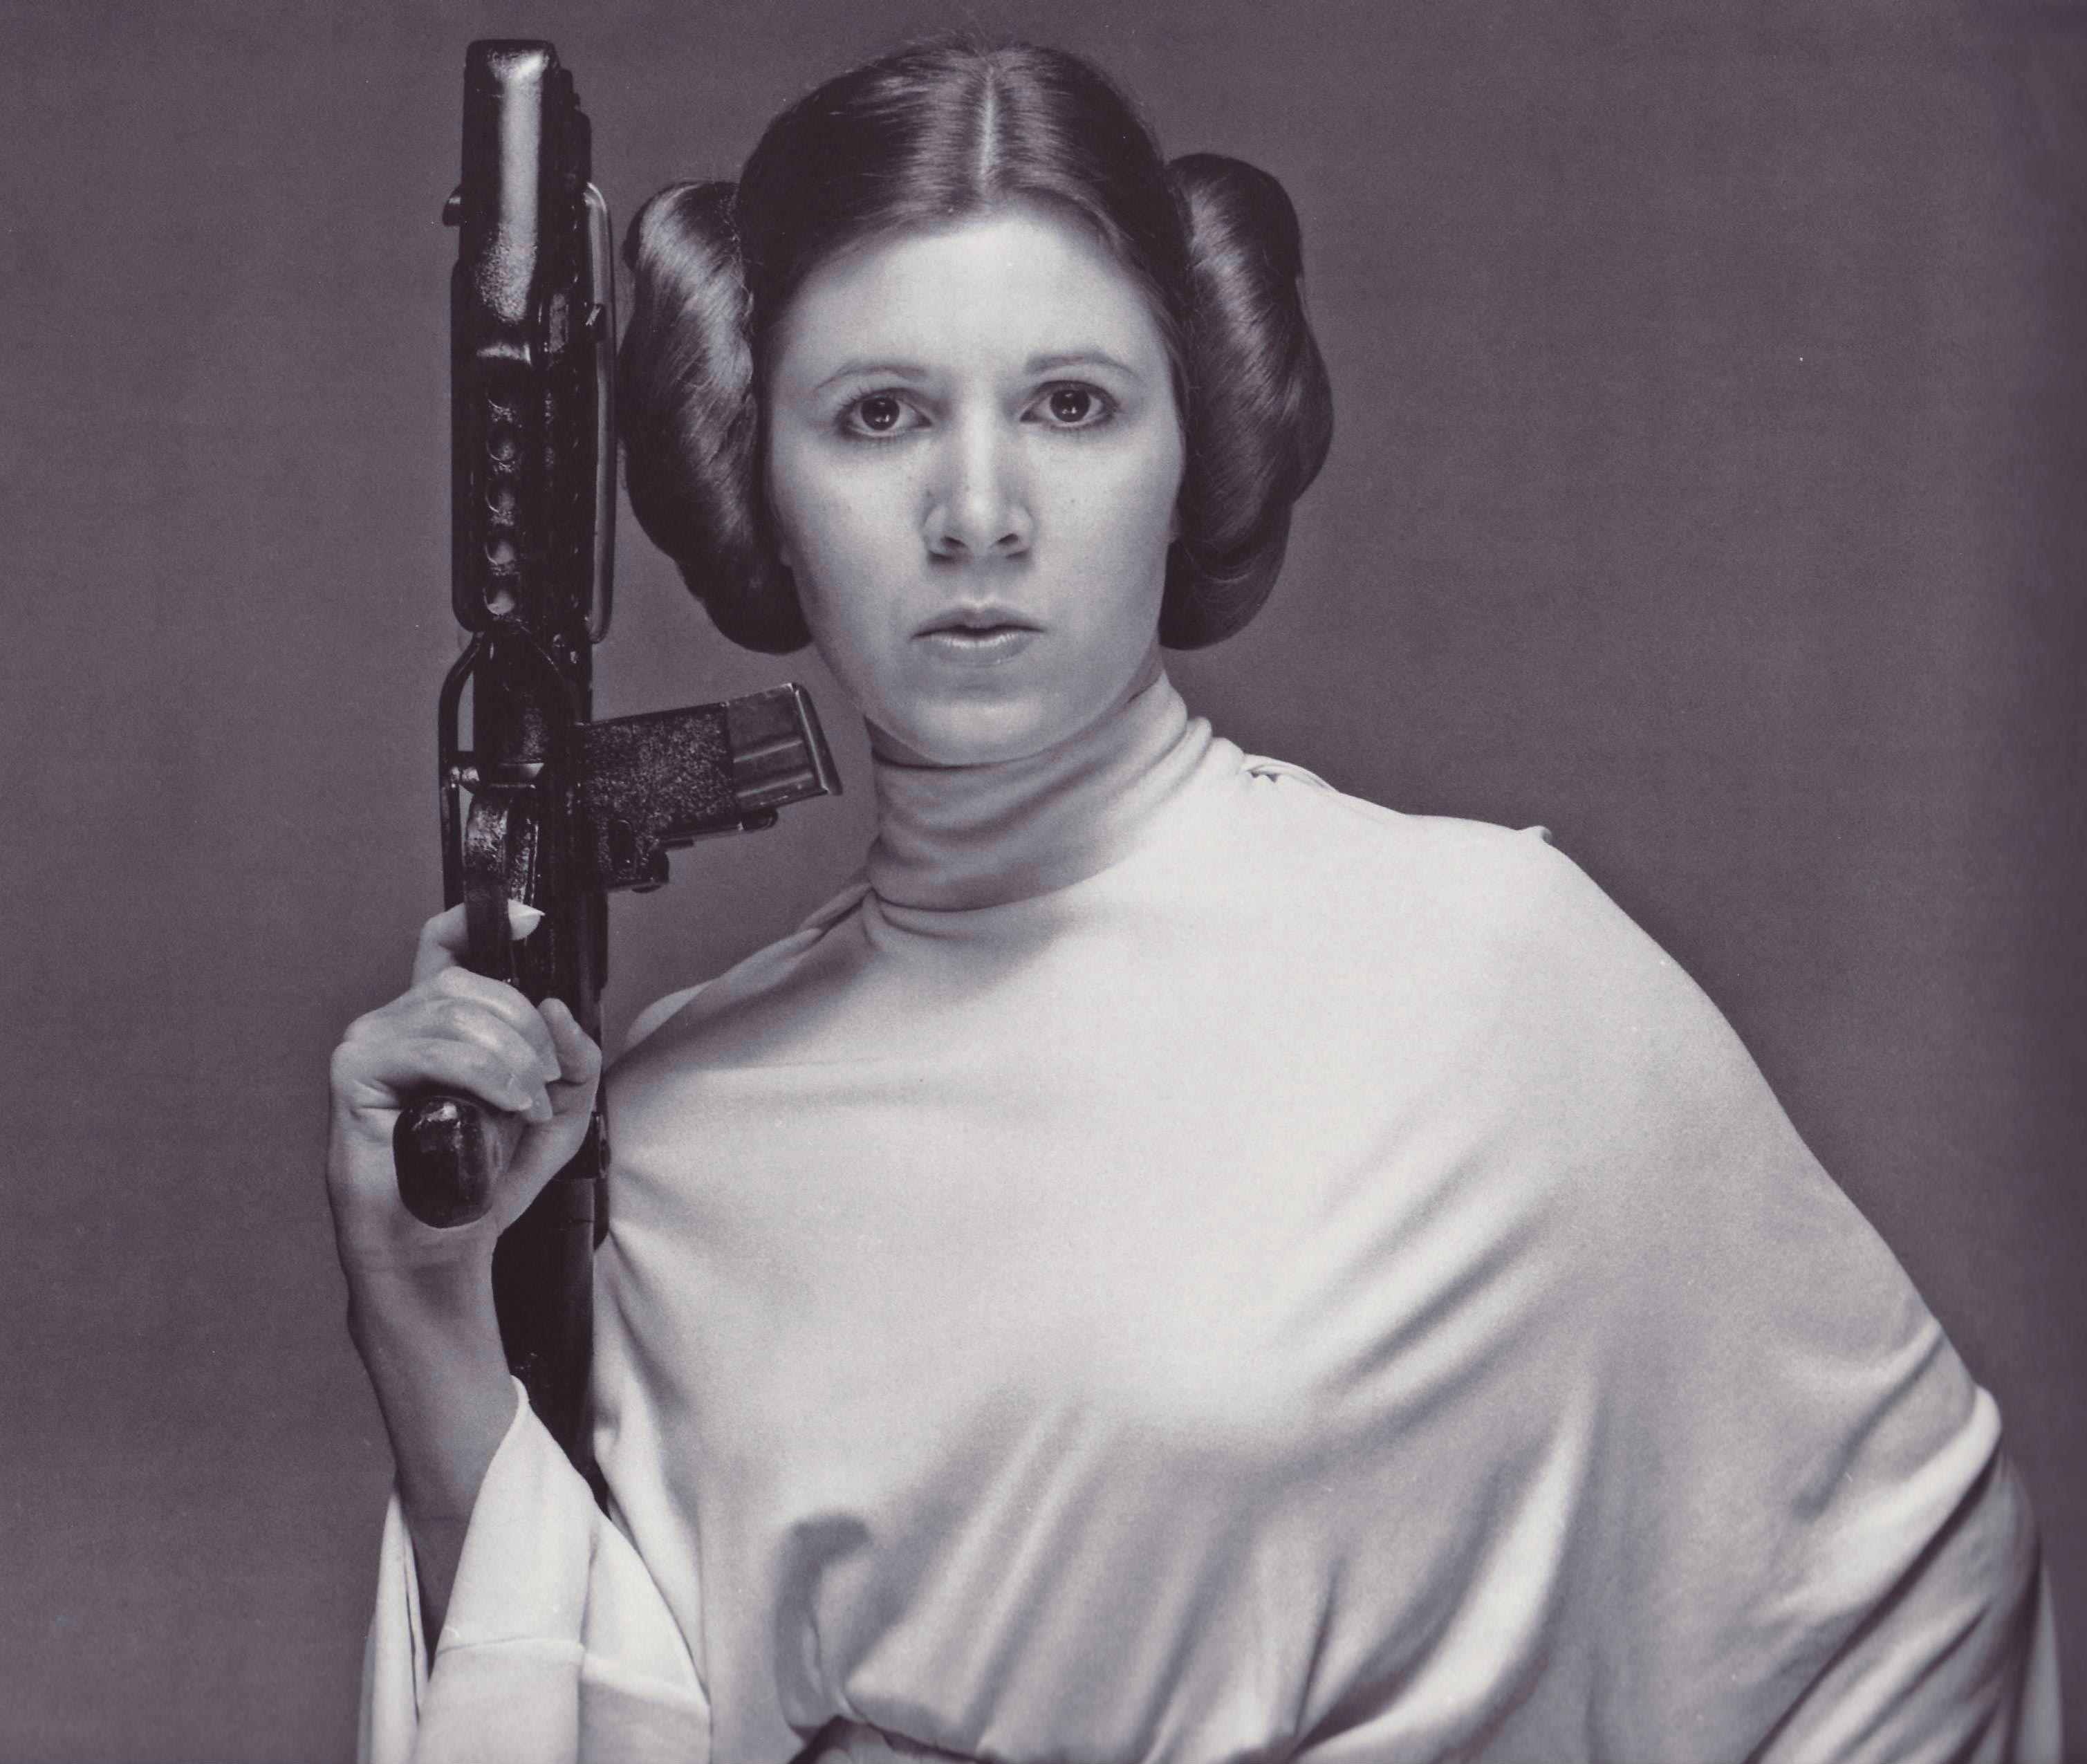 princess-leia-star-wars-chronicles-promo-stormtrooper-blaster-